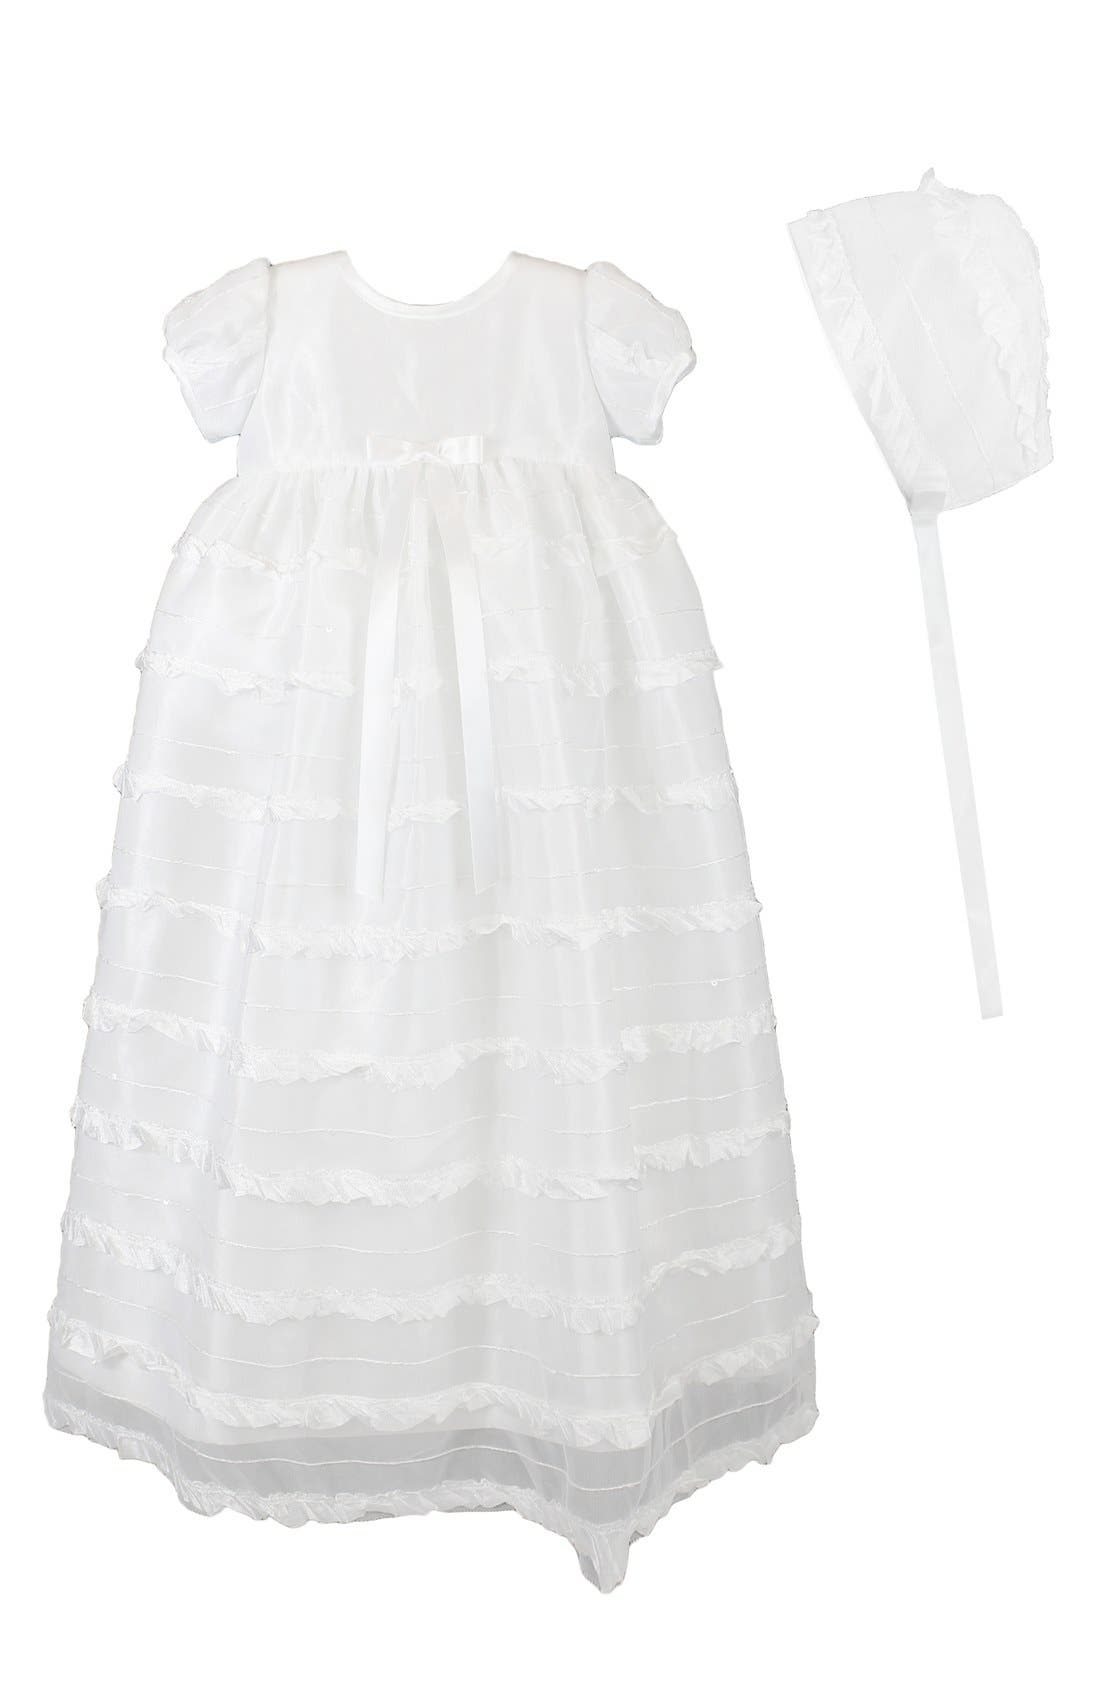 C.I. Castro & Co 'Eyelash' Christening Gown & Bonnet,                         Main,                         color, White